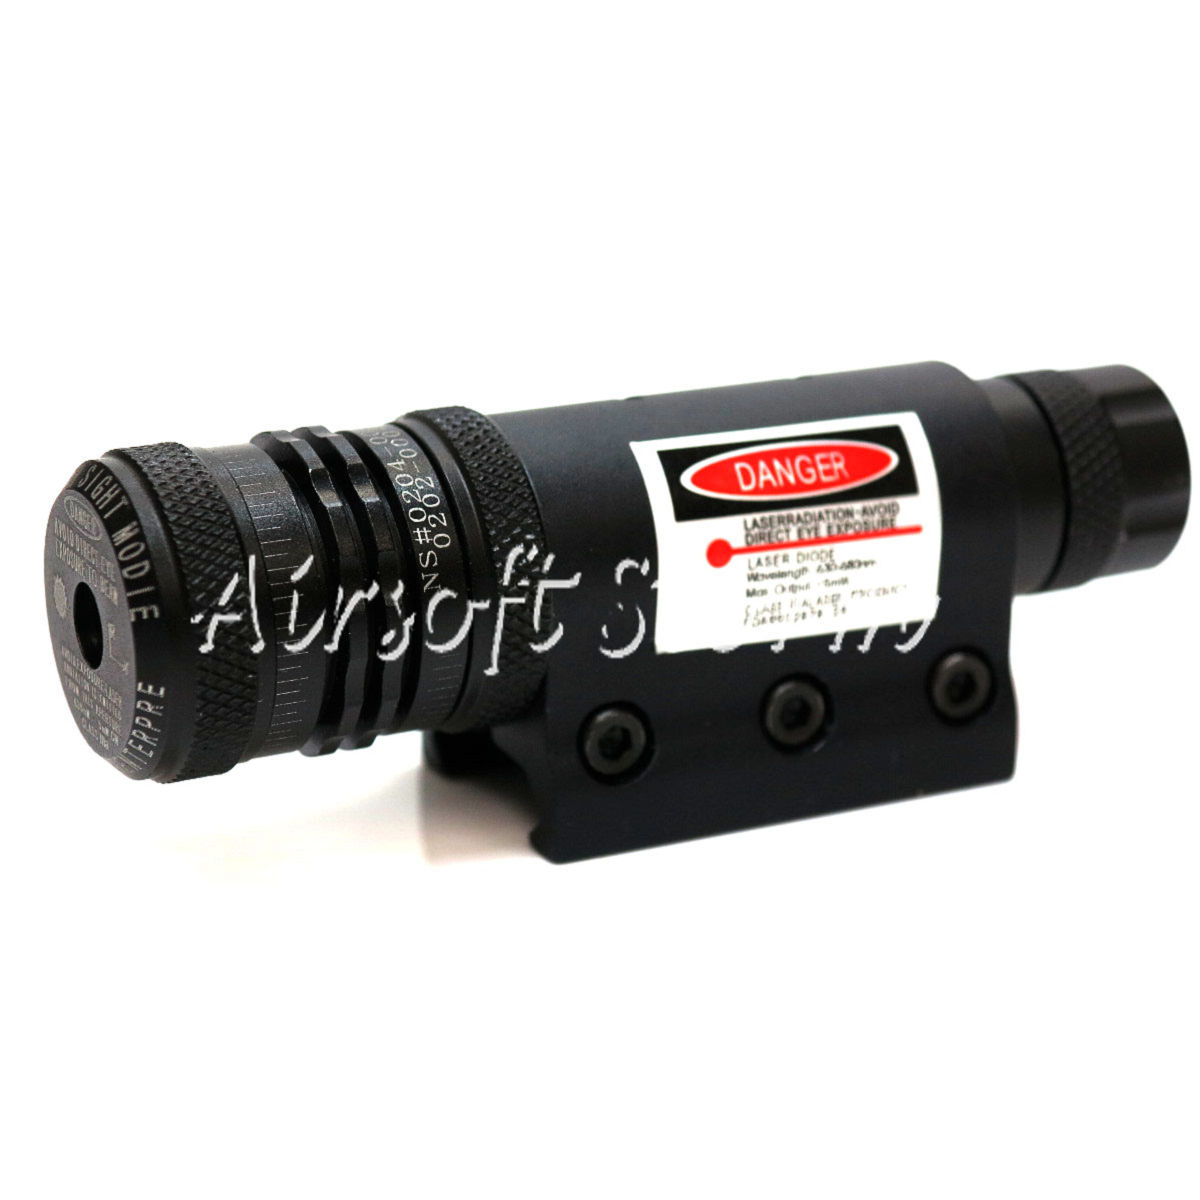 LXGD Tactical Gear Rifle Red Laser Sight Pointer w/ Barrel & RIS Mount JG-10